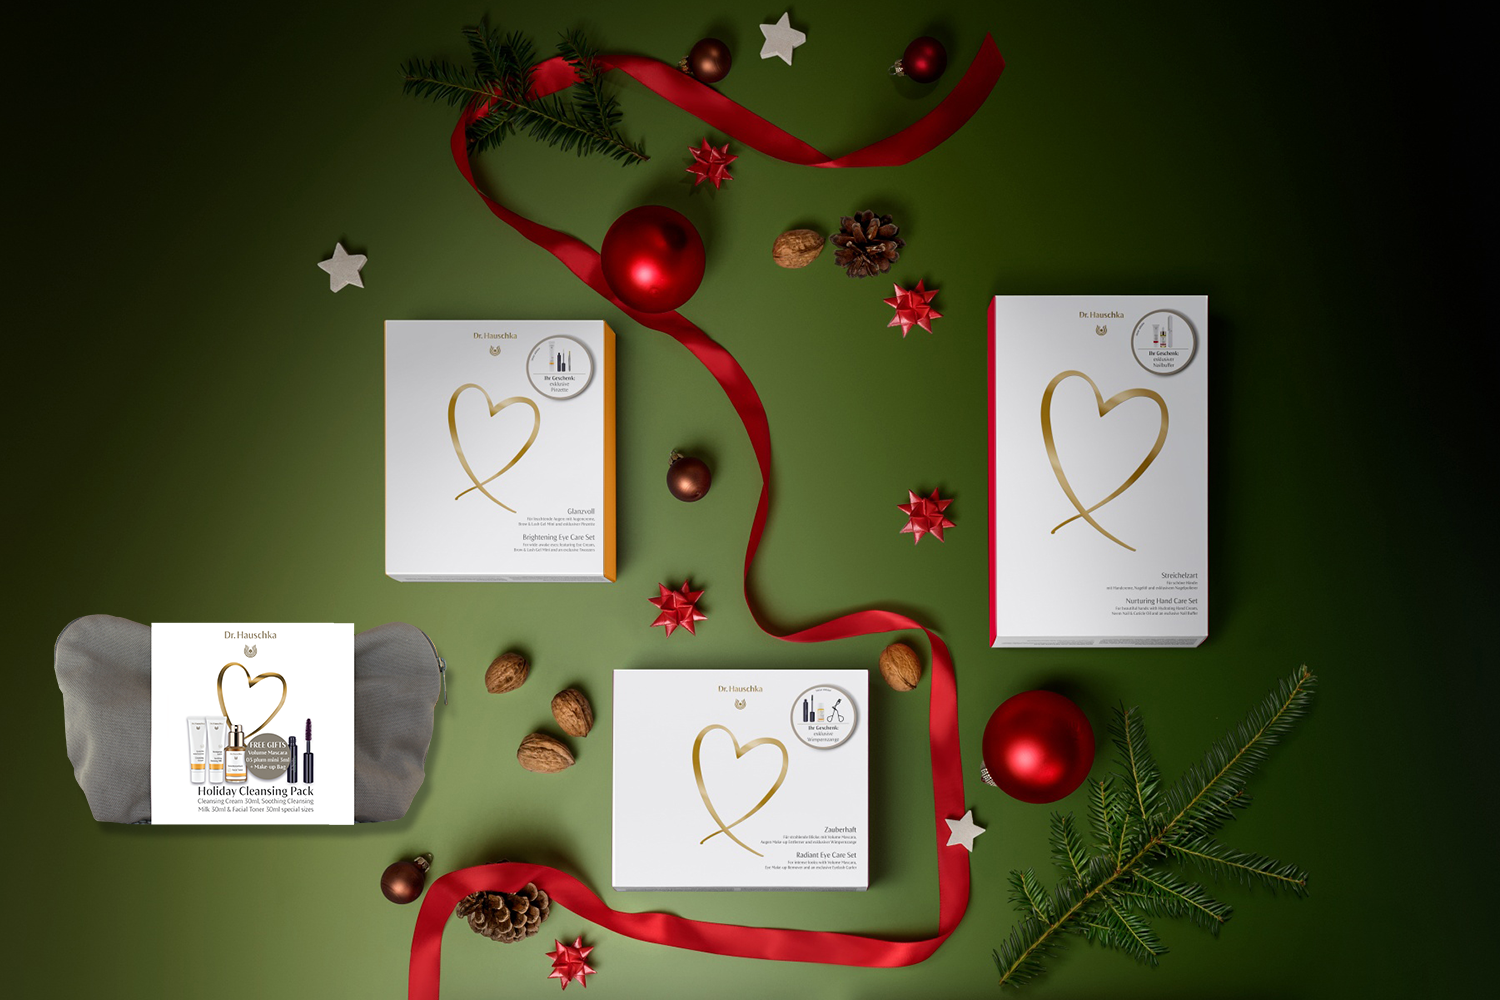 Dr. Hauschka Christmas packs now available - Christmas Packs starting from $55